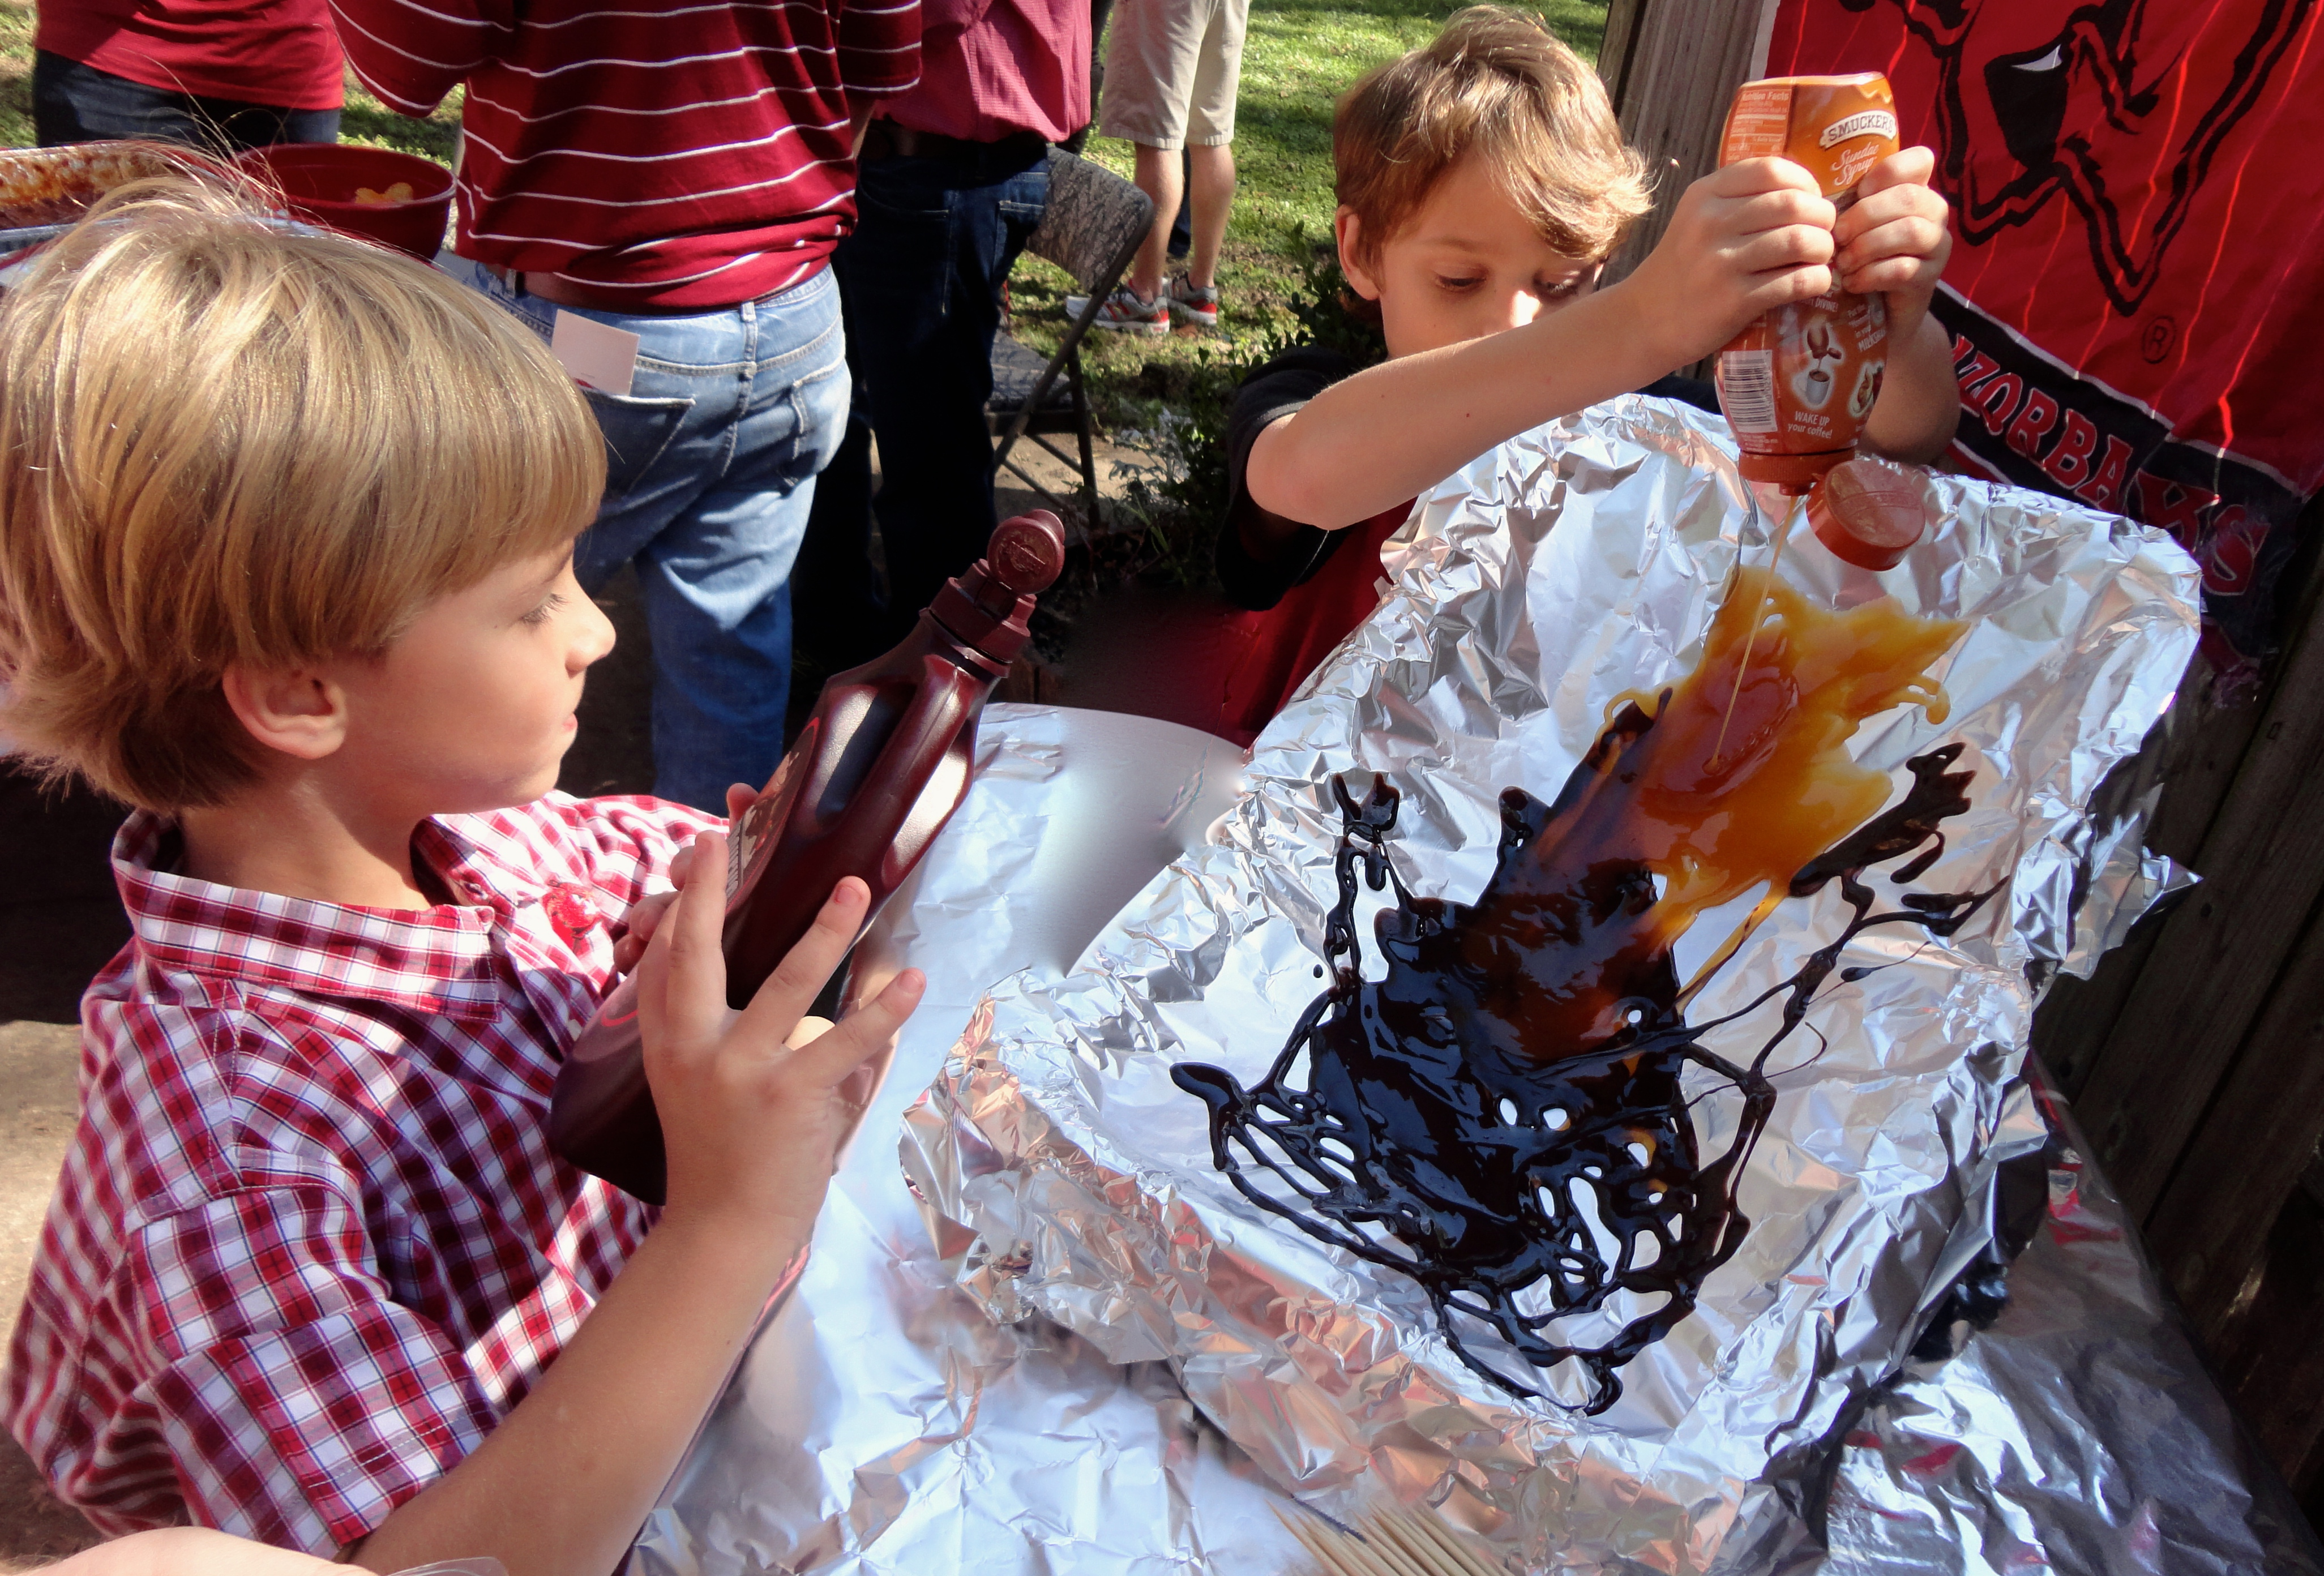 Two younger snouts helping create the mudslide for our skewered apples and marshmallows